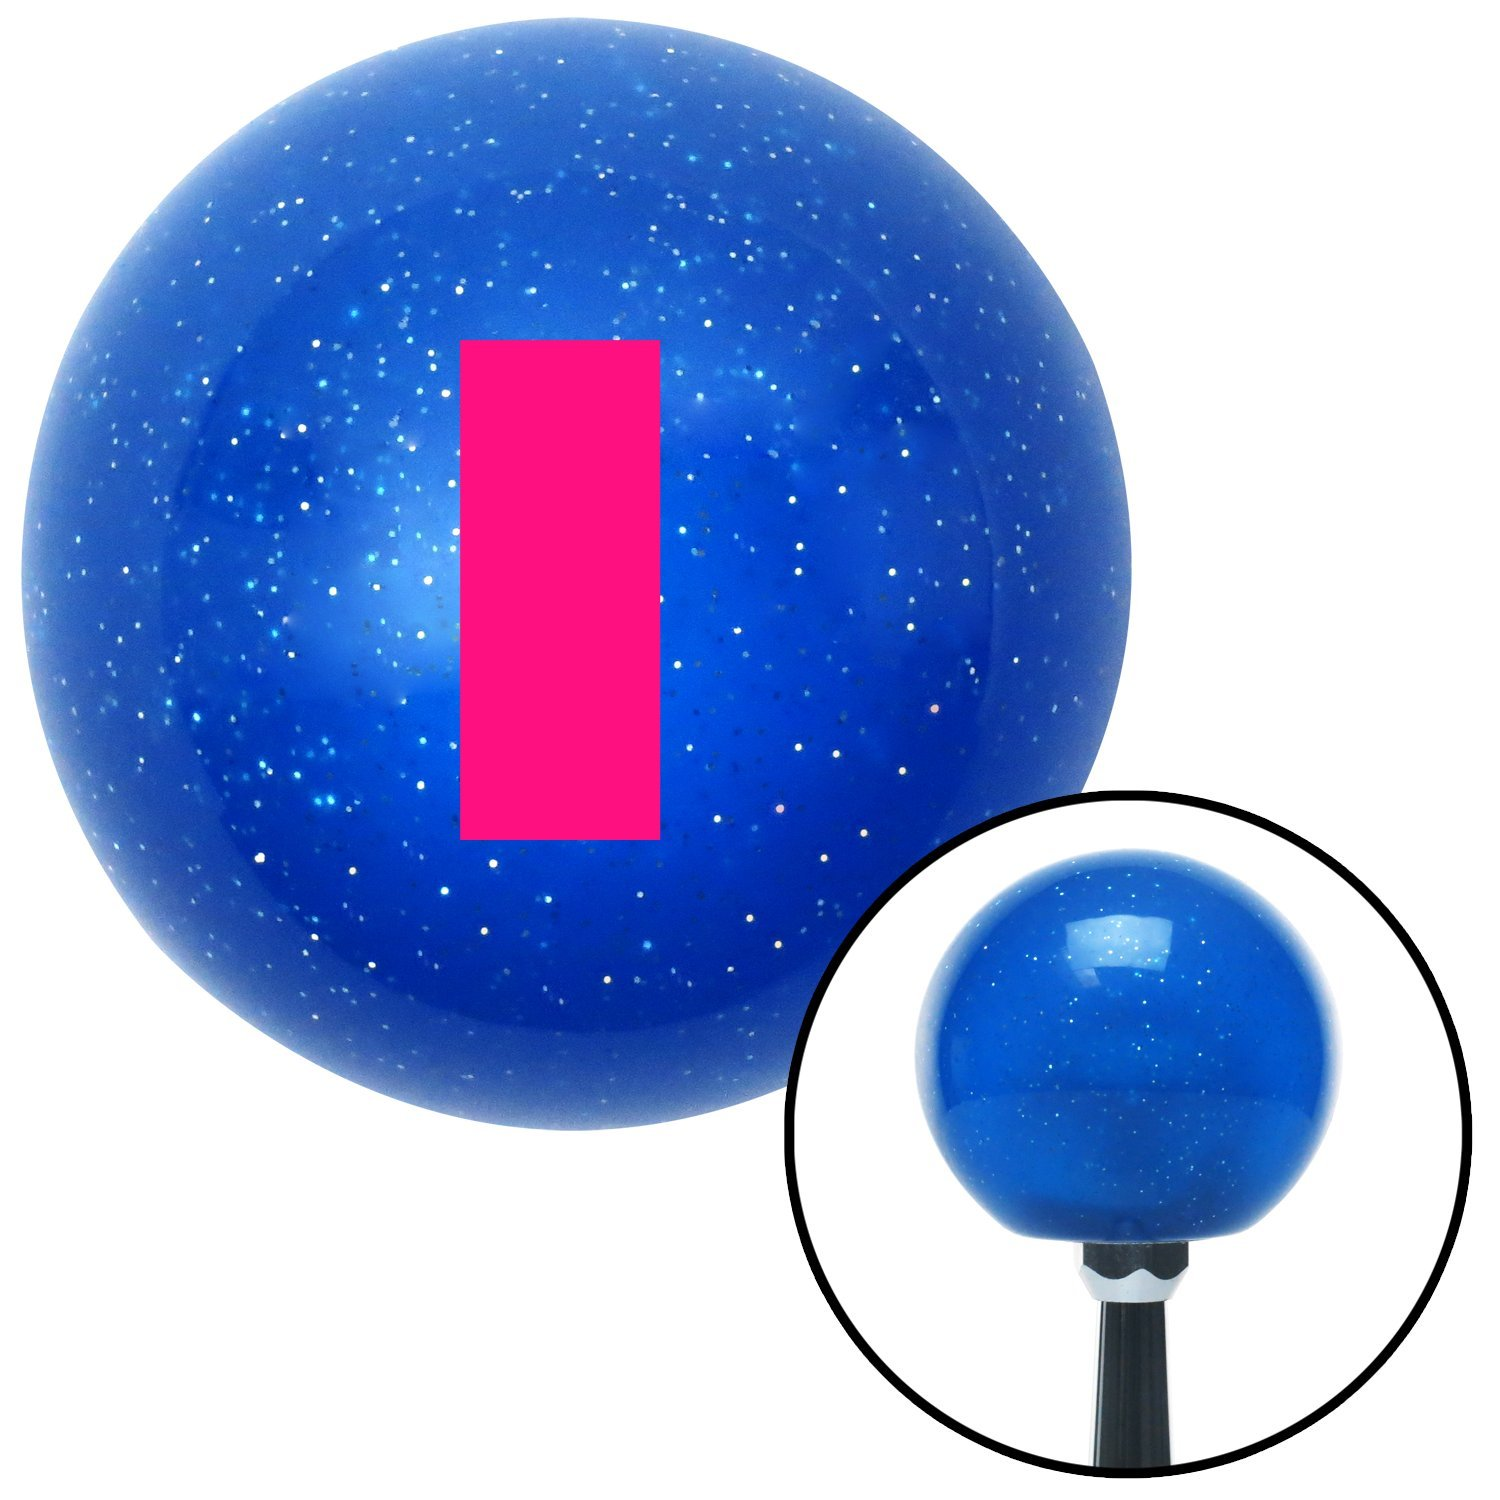 Pink Officer 01 and 02 American Shifter 25988 Blue Metal Flake Shift Knob